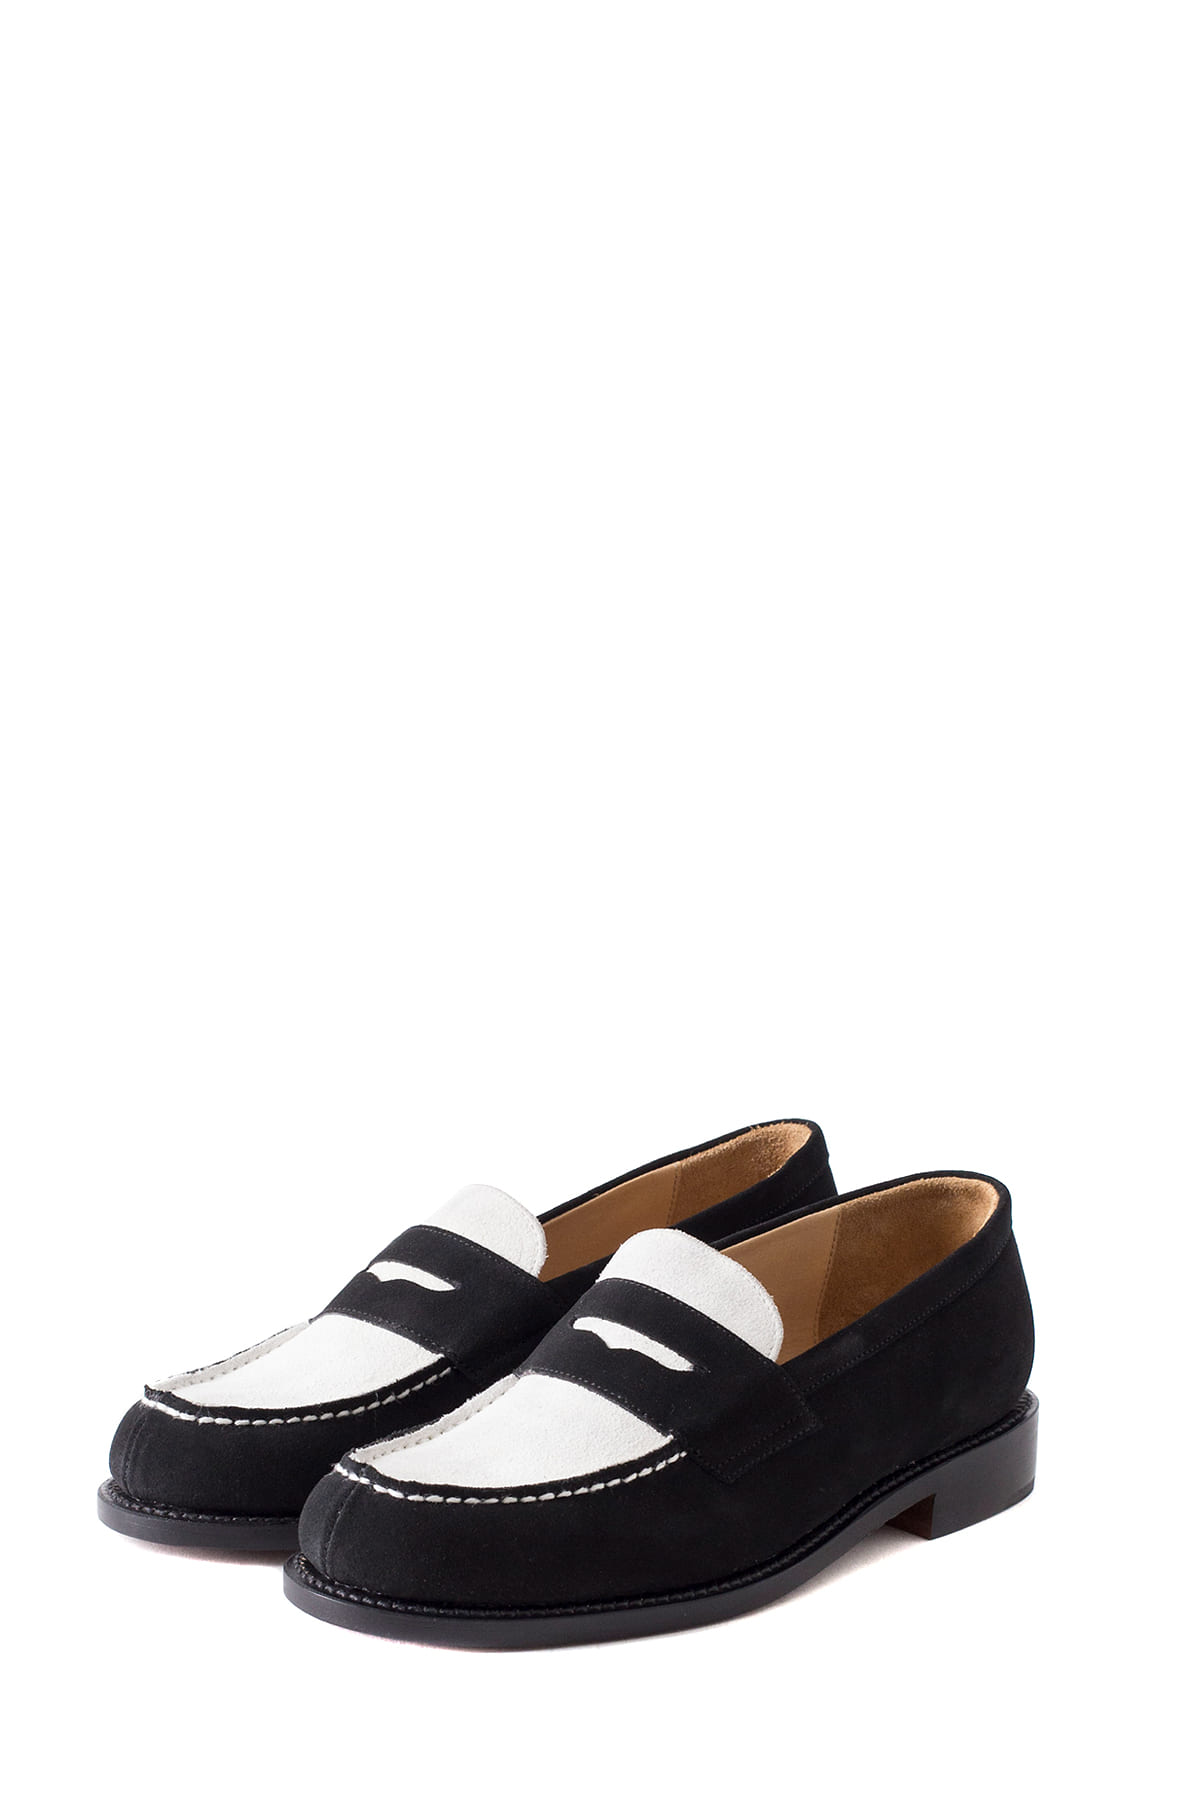 Hender Scheme : Typical Color Exception Loafer (Black)